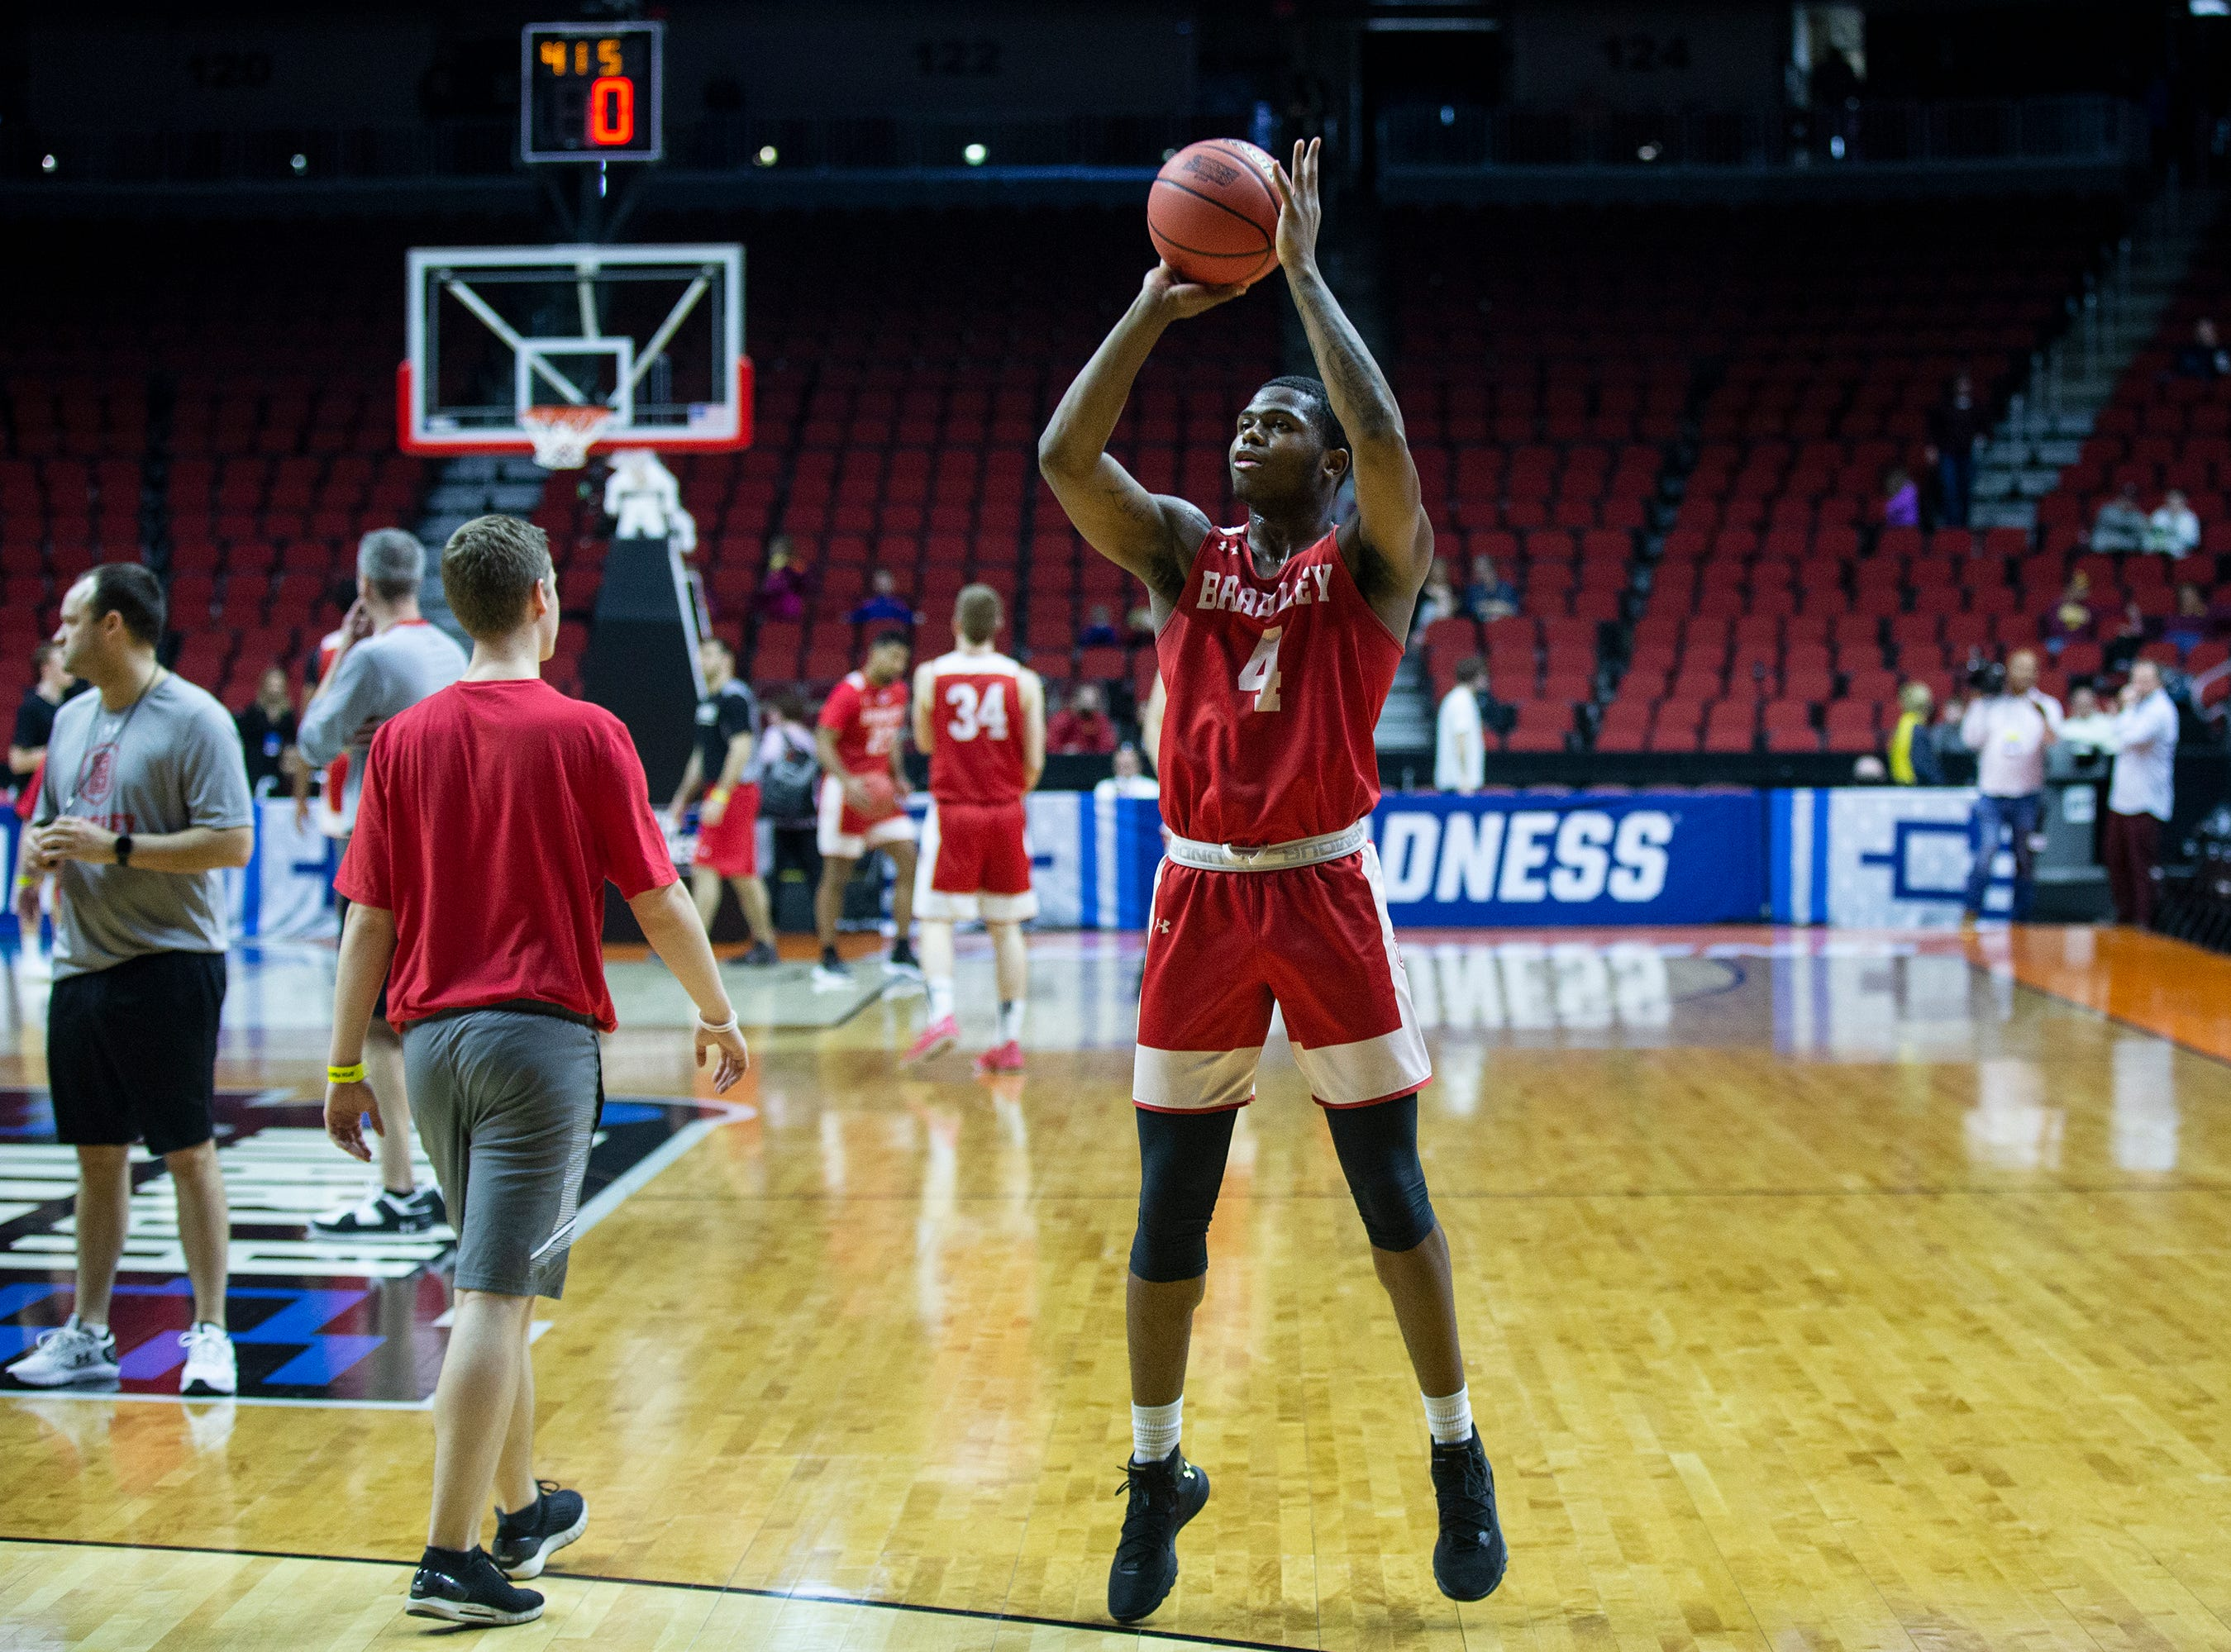 Bradley's Armon Brummett shoots the ball during Bradley's open practice before the first round of the NCAA Men's Basketball Tournament on Wednesday, March 20, 2019, at Wells Fargo Arena in Des Moines, Iowa.